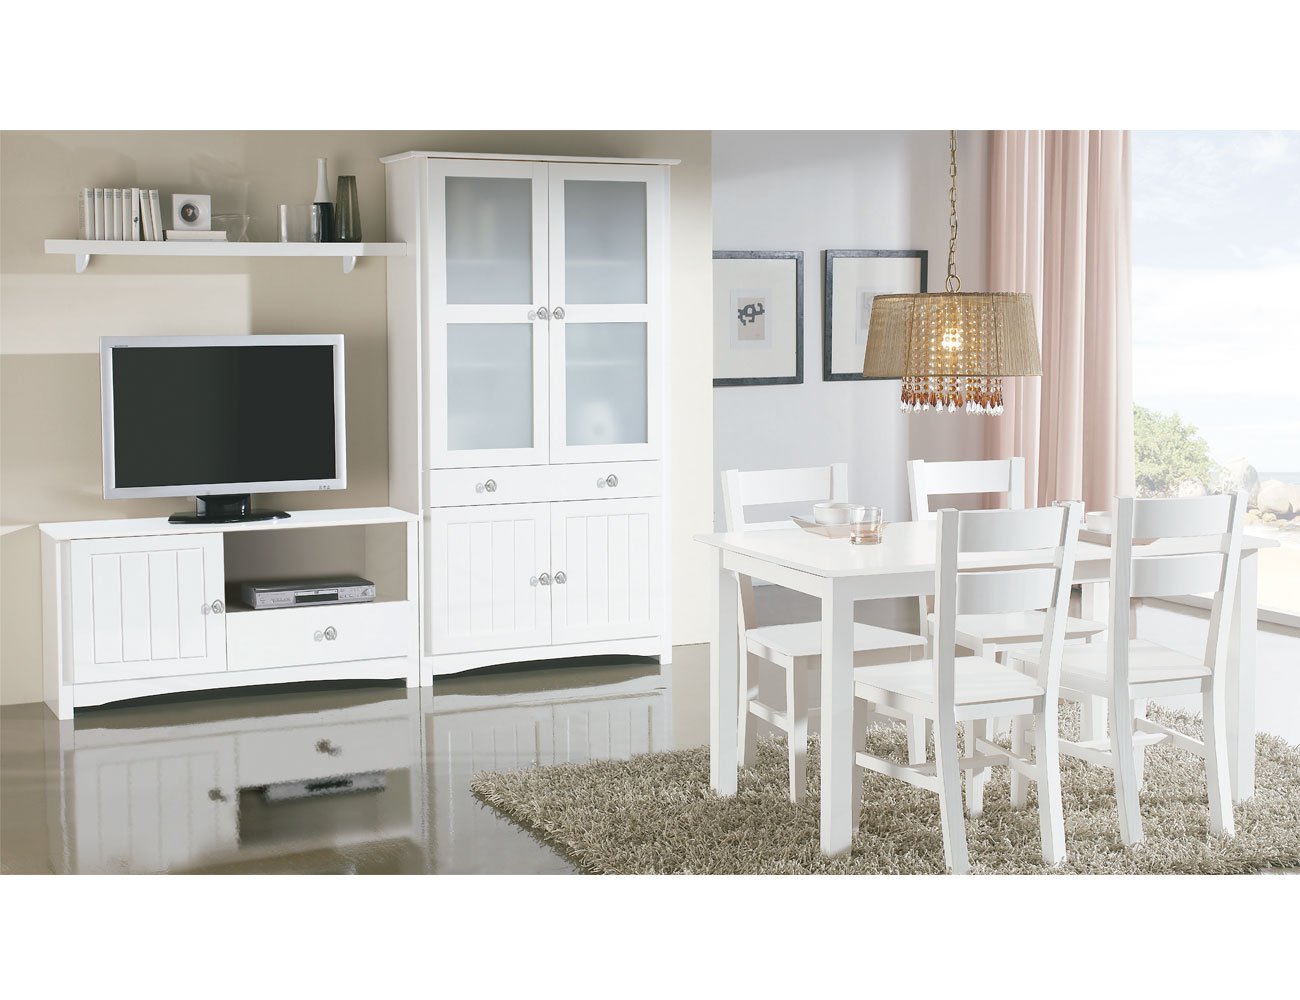 Sal n comedor con vitrina y mueble tv en madera color for Muebles de salon en color blanco